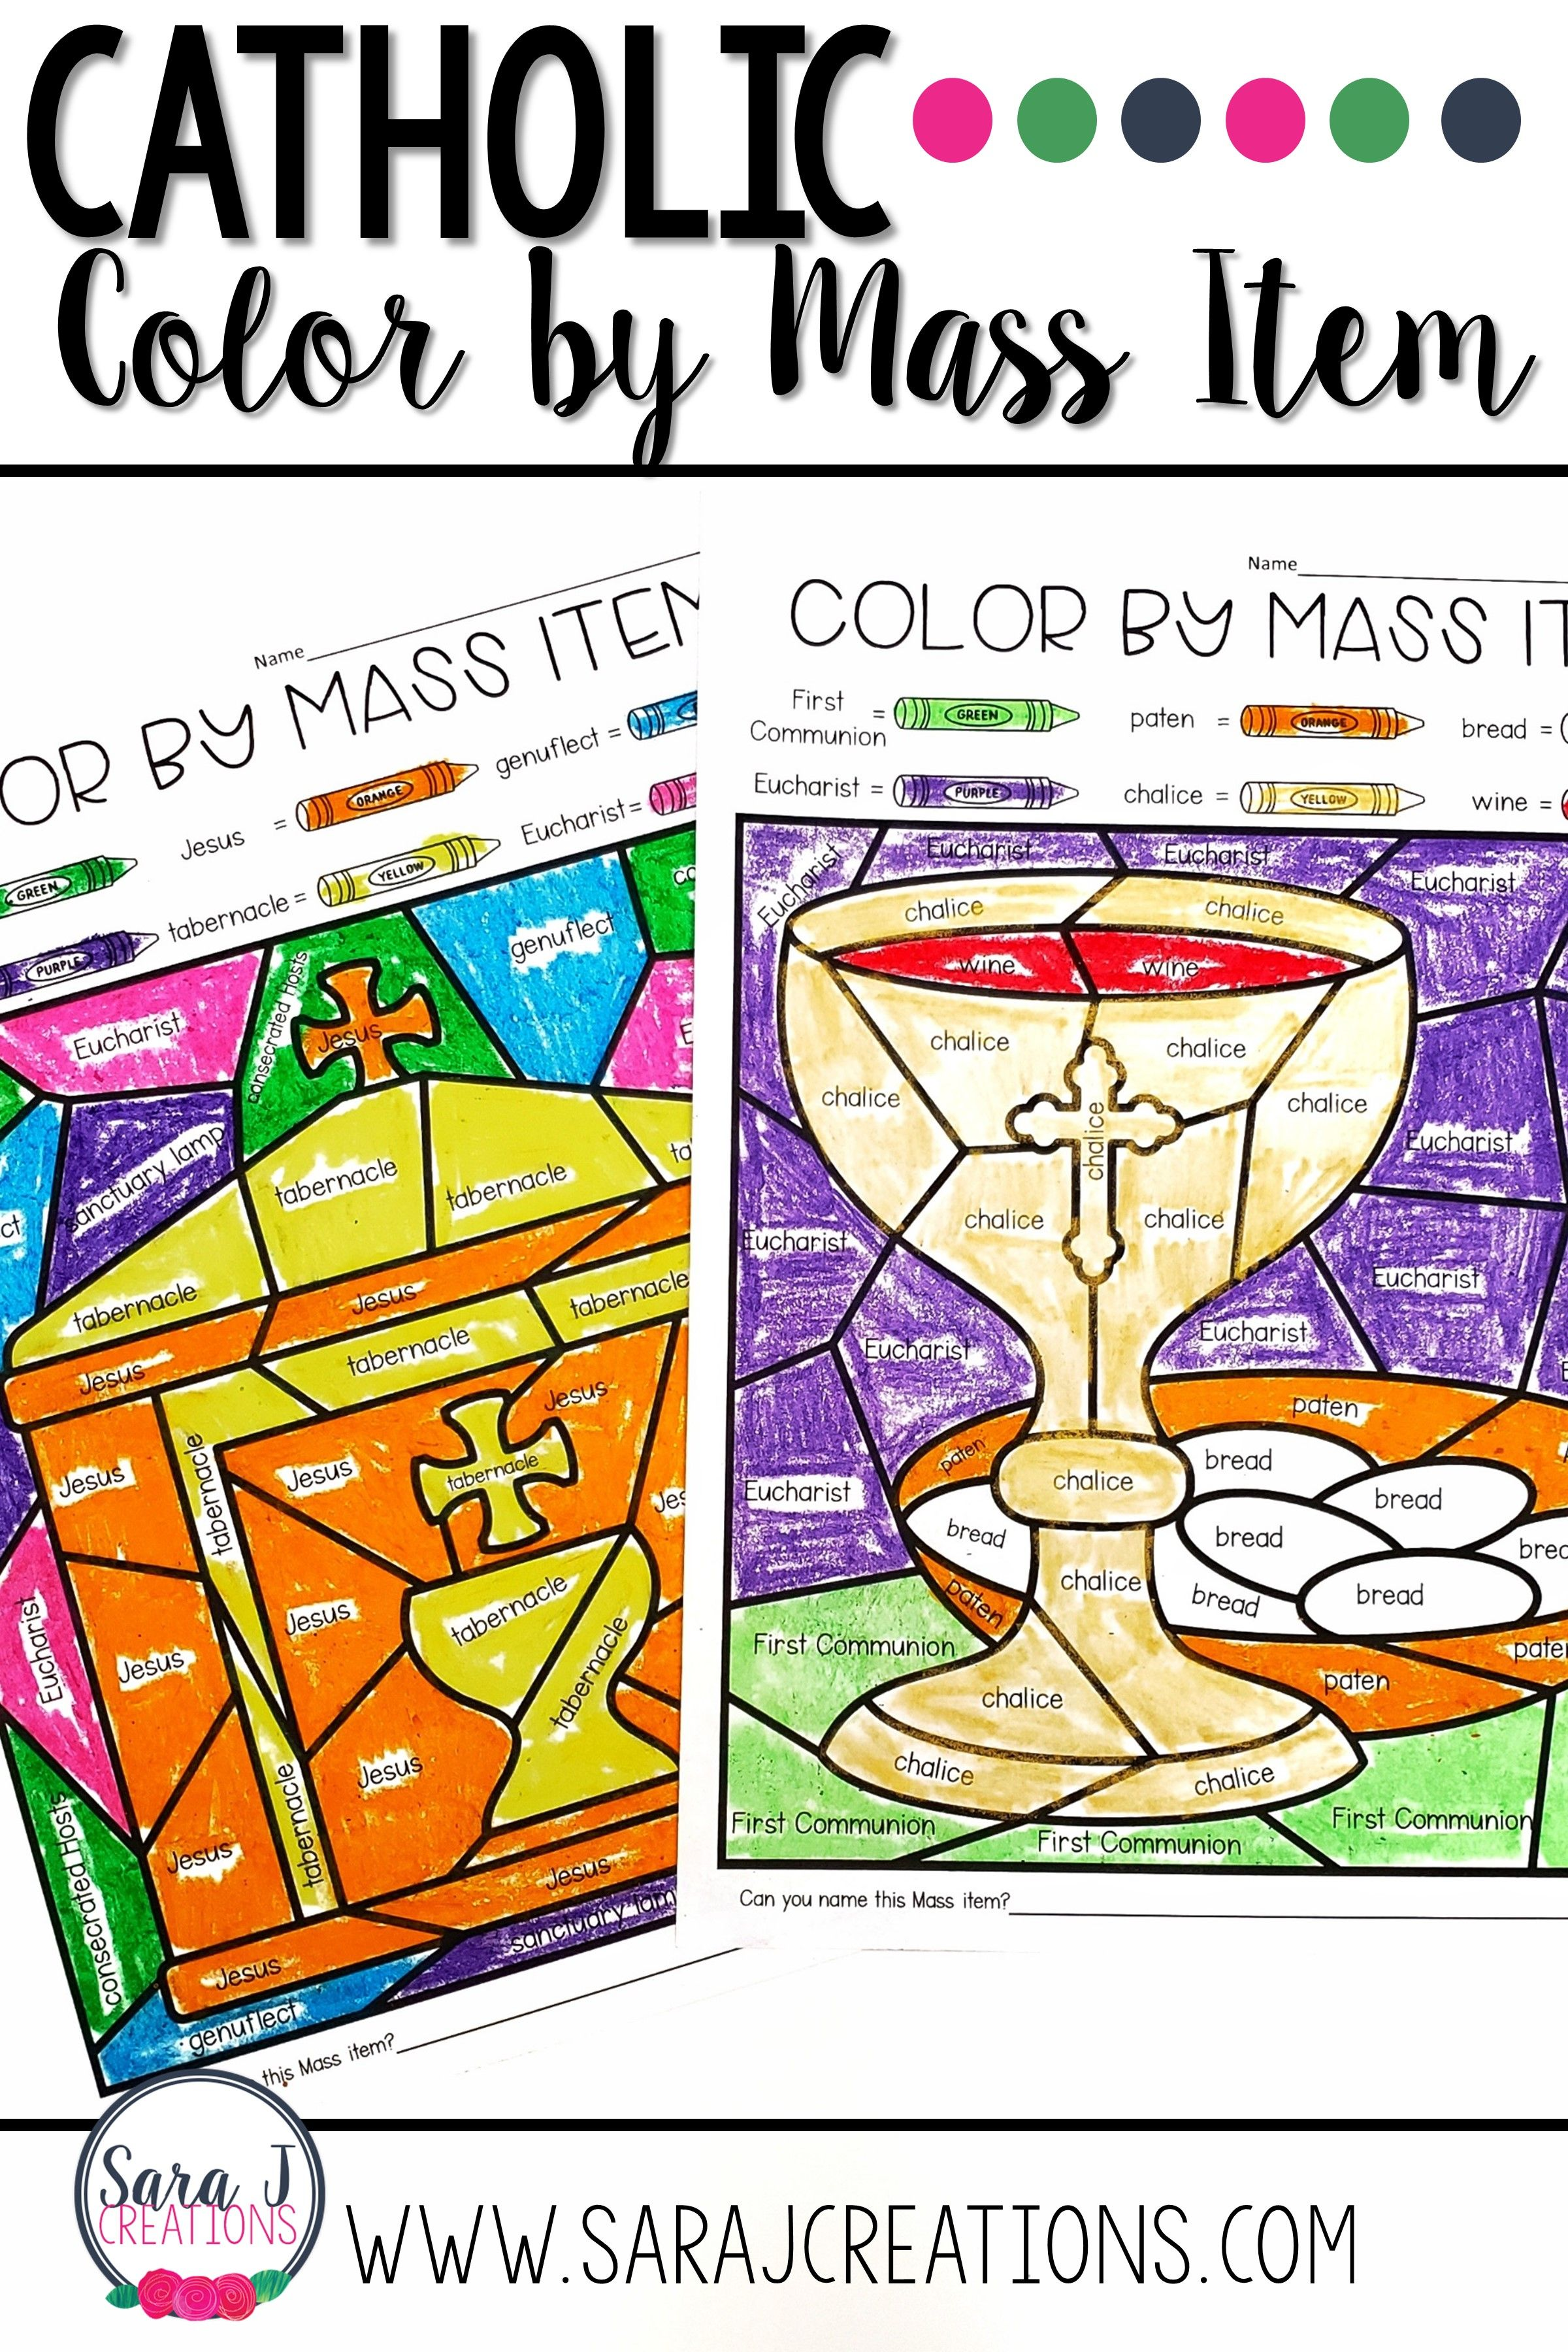 9 Church Coloring Pages: Roman Catholic Churches, Cathedrals, Missions | 3600x2400